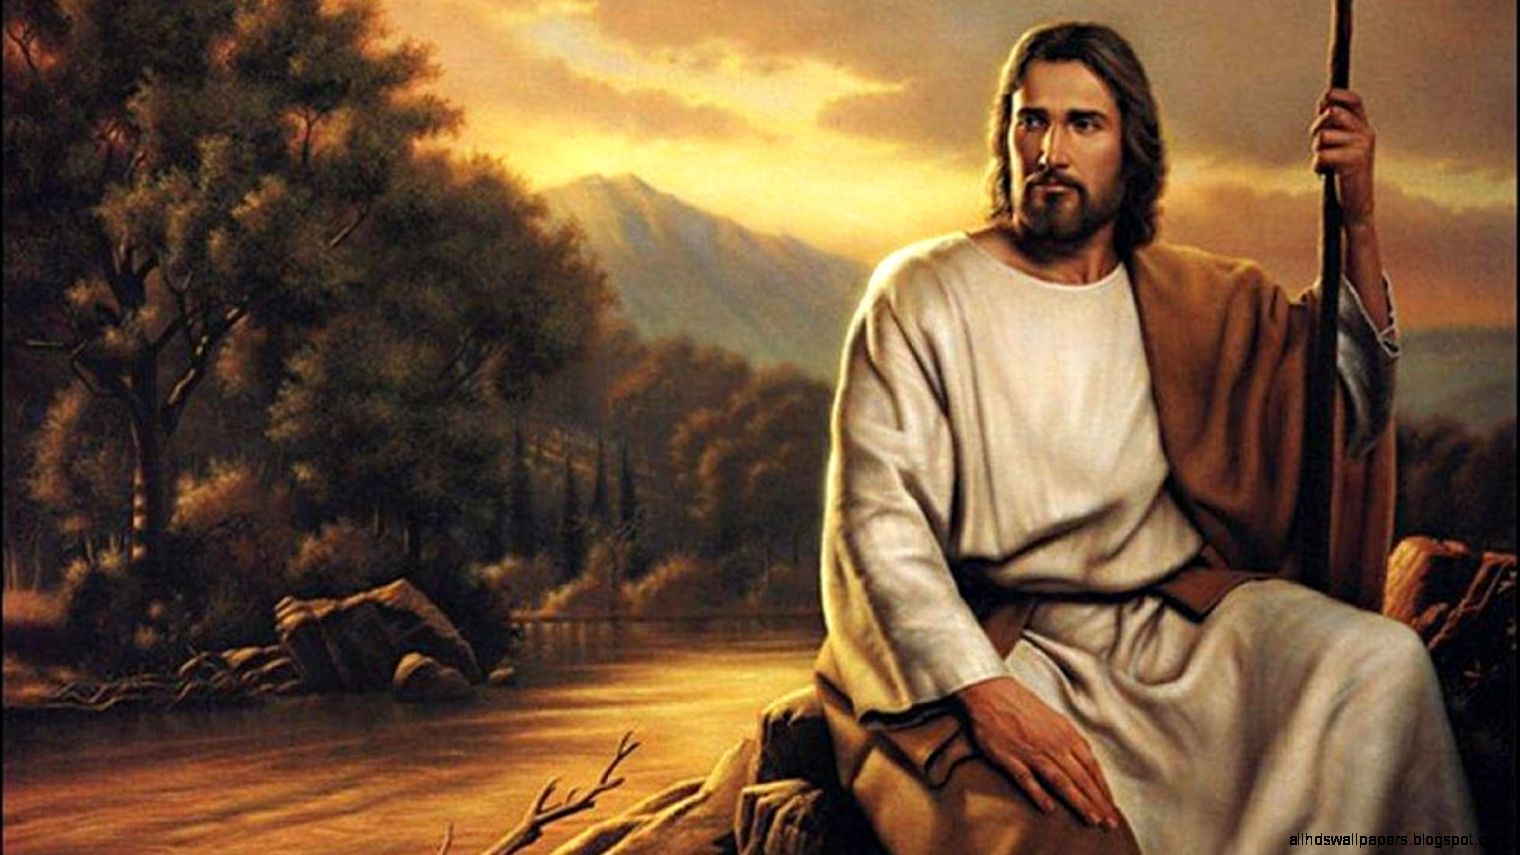 jesus christ wallpaper sized images pic set 13 - HD 1520×855